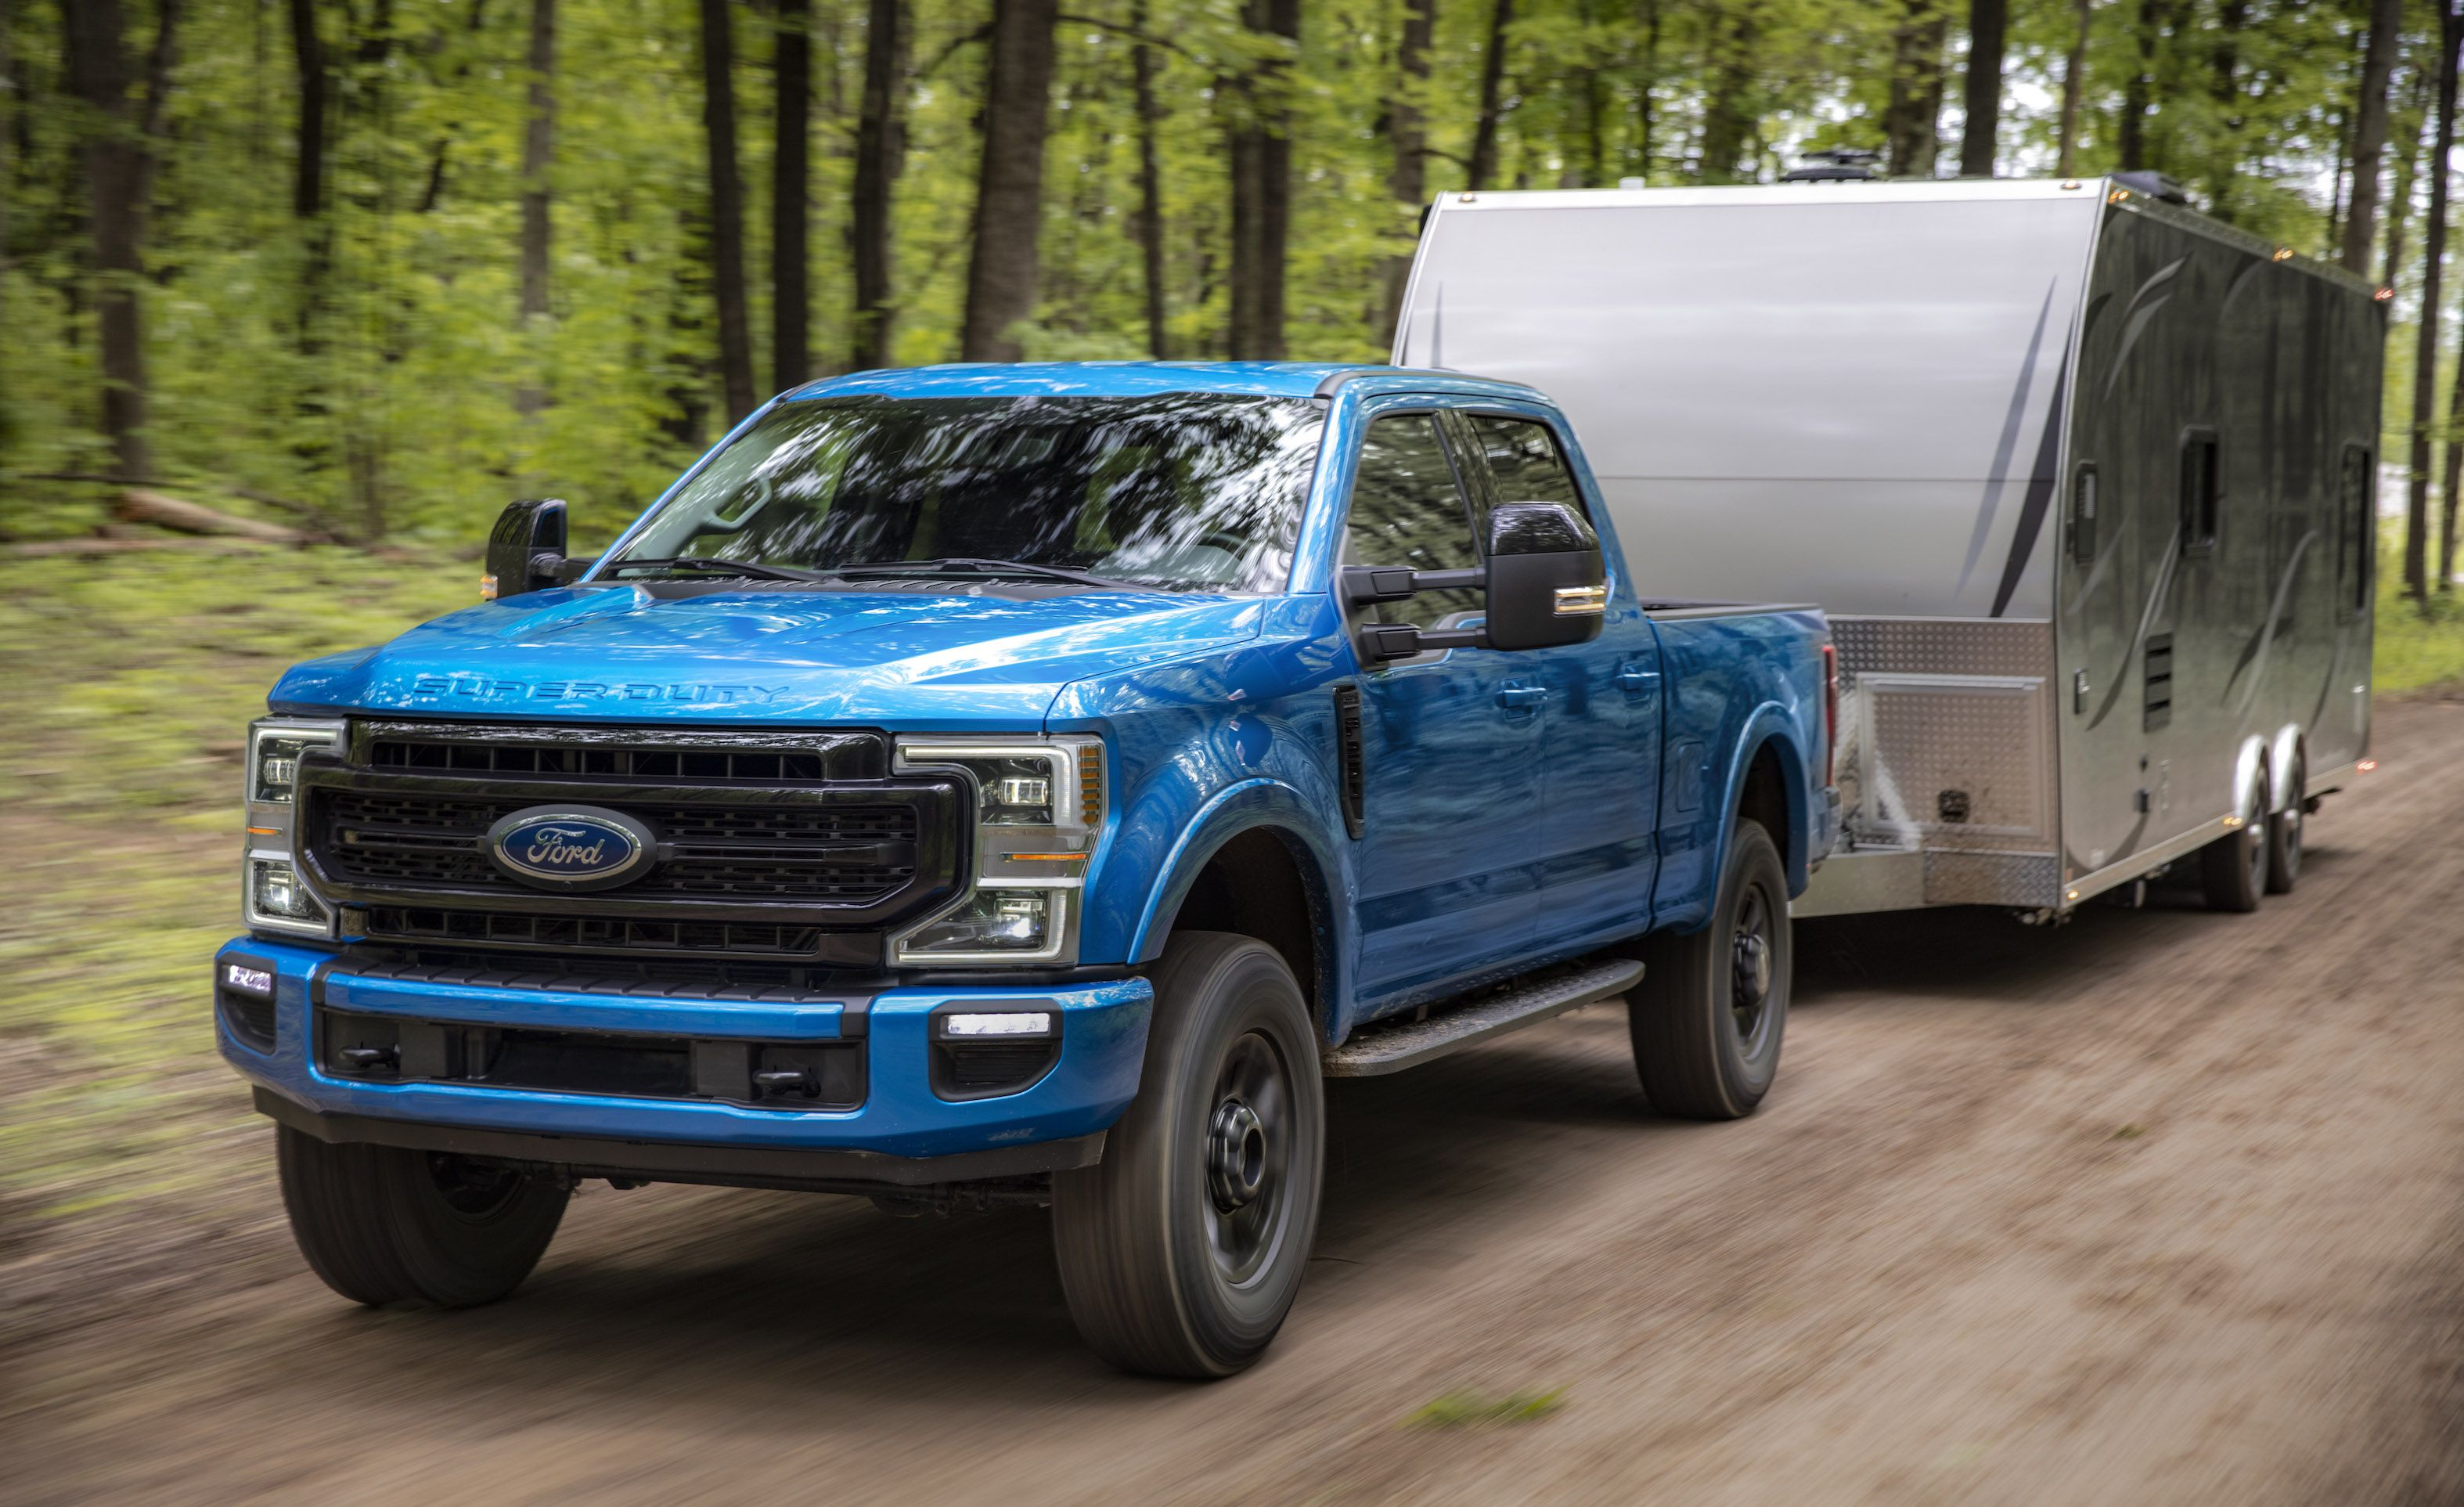 New Ford 7 3 Liter Godzilla V 8 Coming For Super Duty Lineup